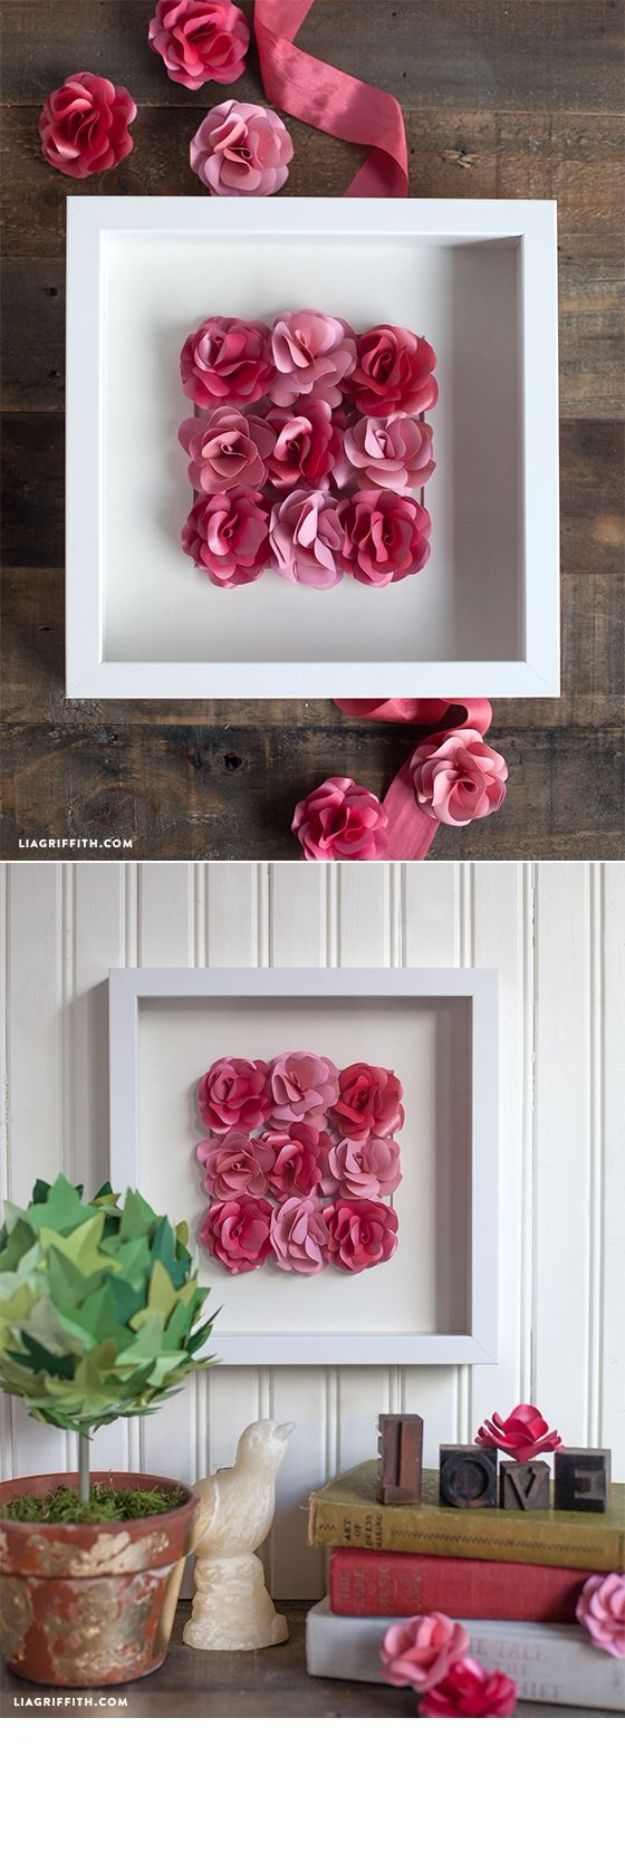 Rose Crafts - Mini Paper Rose Framed Artwork - Easy Craft Projects With Roses - Paper Flowers, Quilt Patterns, DIY Rose Art for Kids - Dried and Real Roses for Wall Art and Do It Yourself Home Decor - Mothers Day Gift Ideas - Fake Rose Arrangements That Look Amazing - Cute Centerrpieces and Crafty DIY Gifts With A Rose http://diyjoy.com/rose-crafts